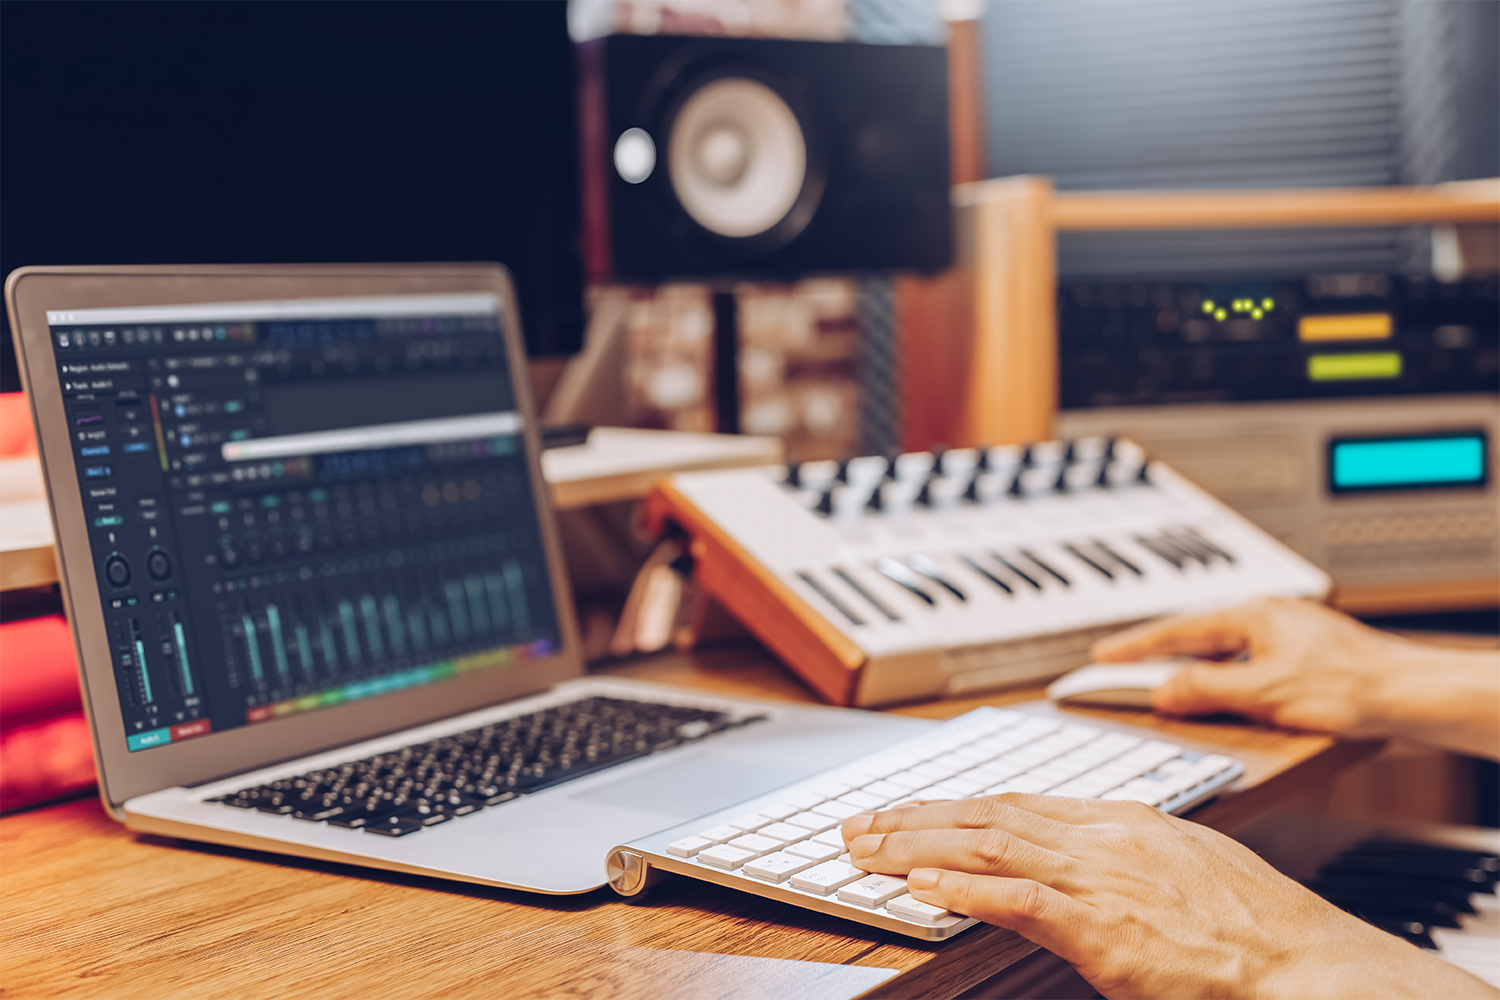 8 Laptop Qualities For Music Production